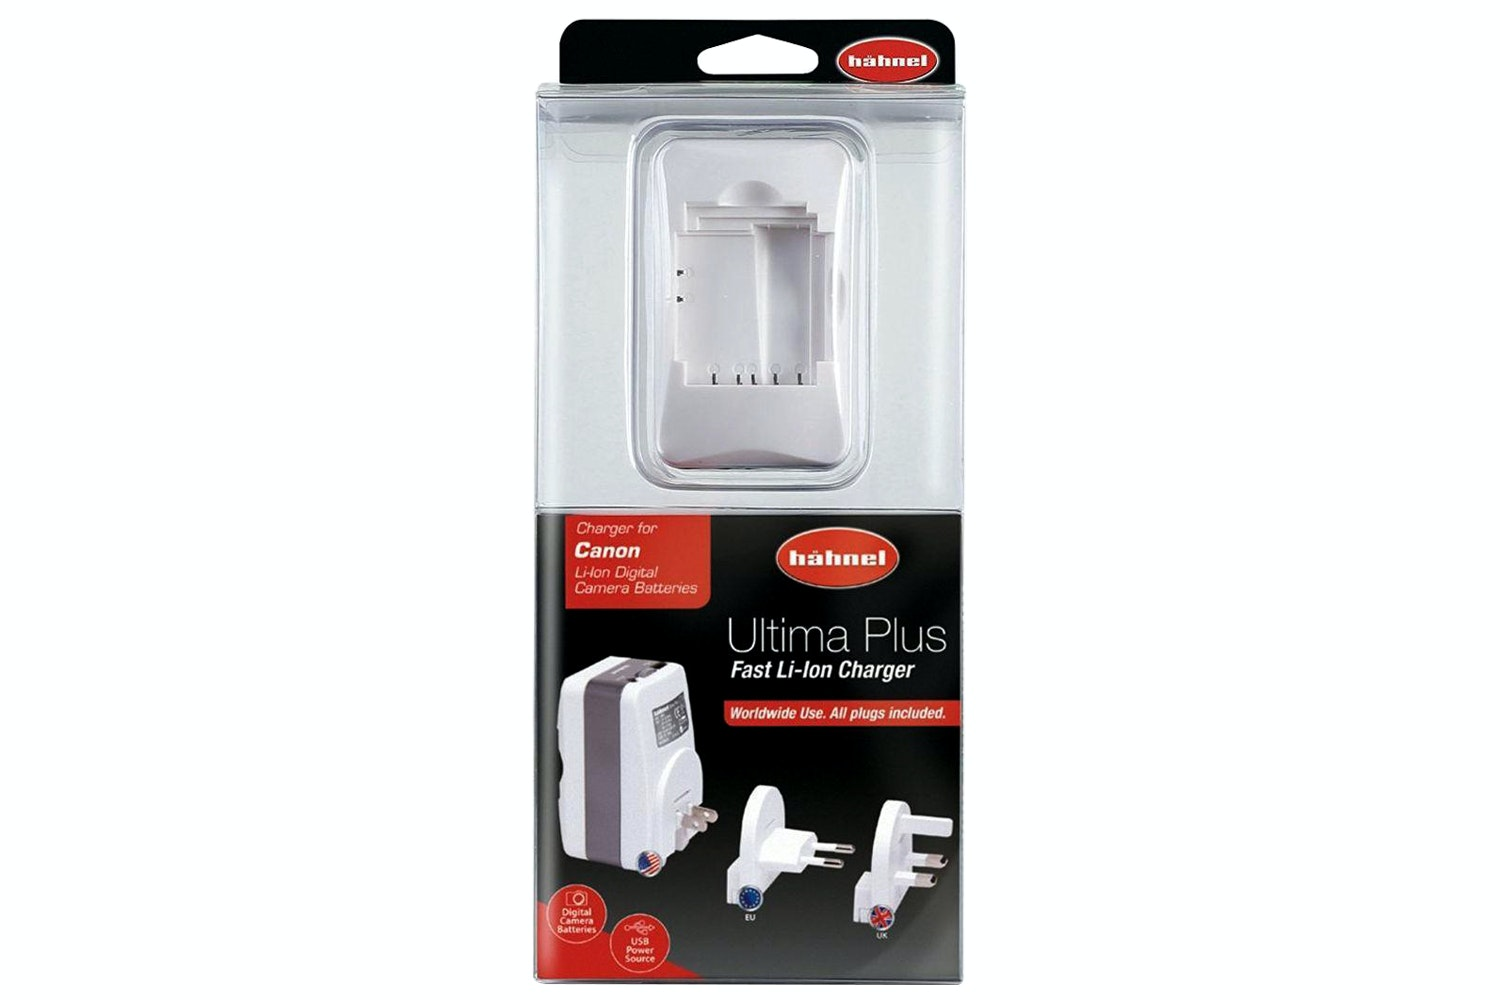 Hahnel Ultima Plus Canon Battert Charger